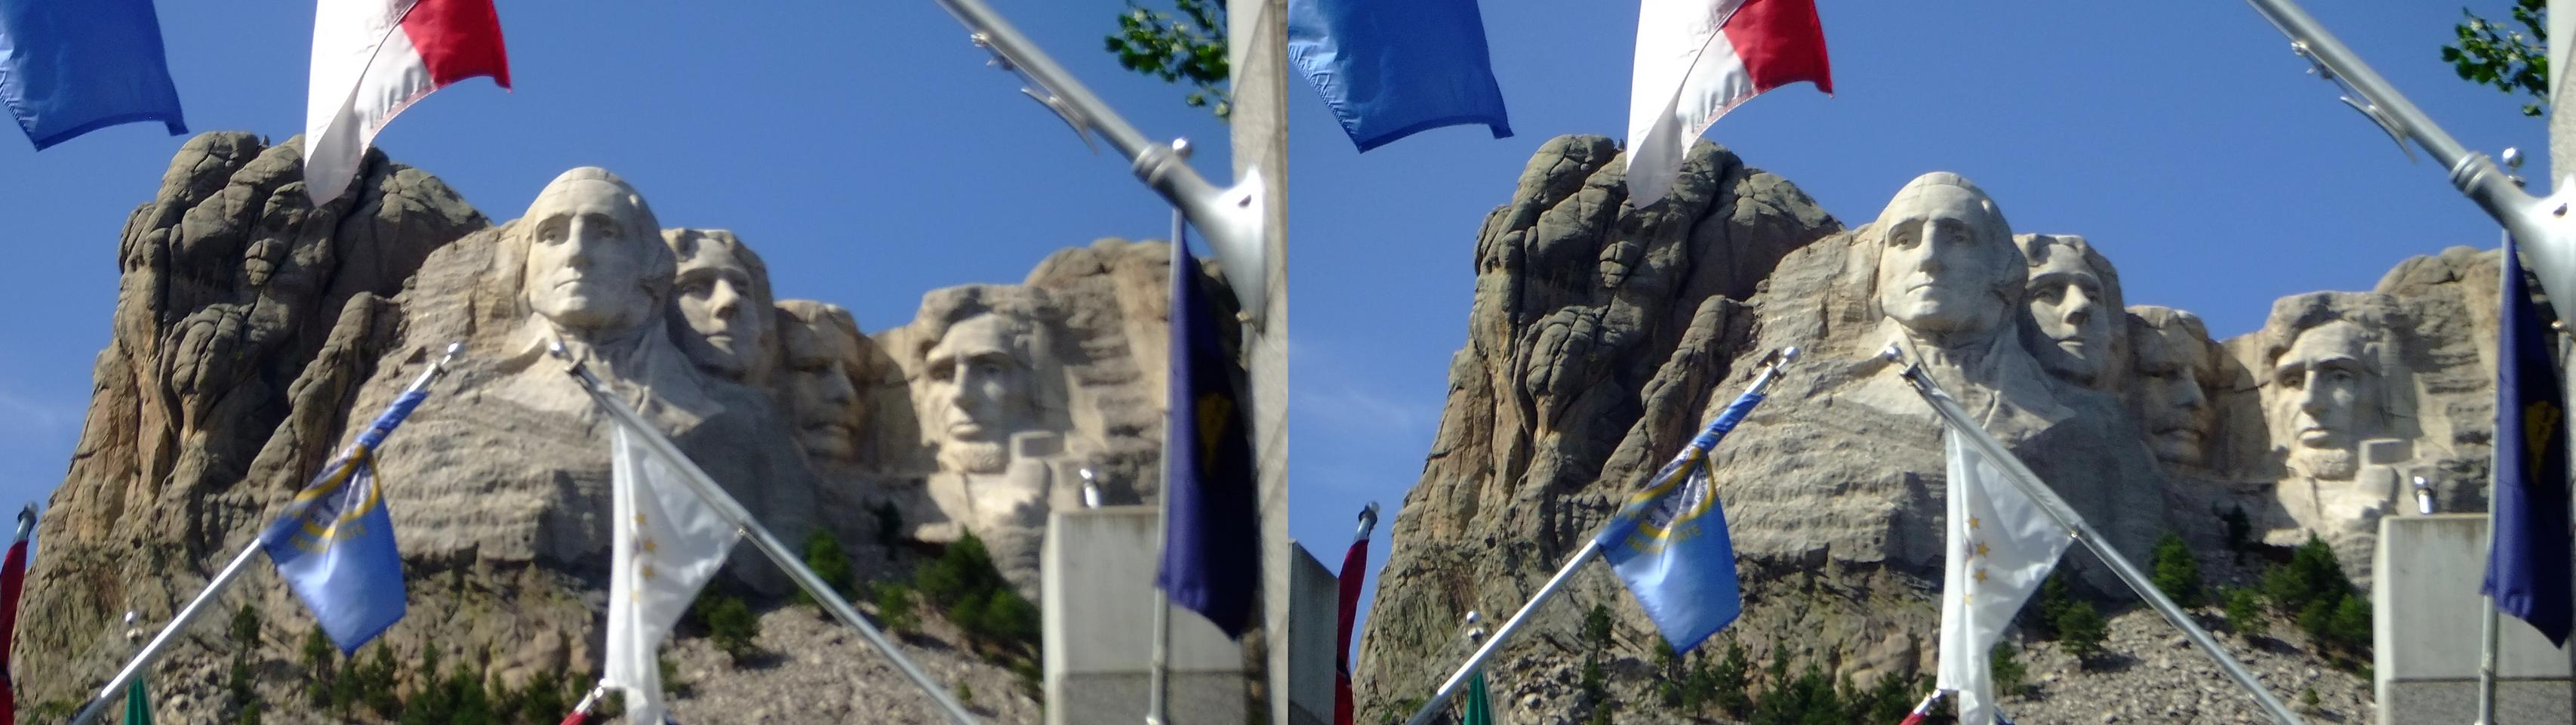 Mt. Rushmore & flags